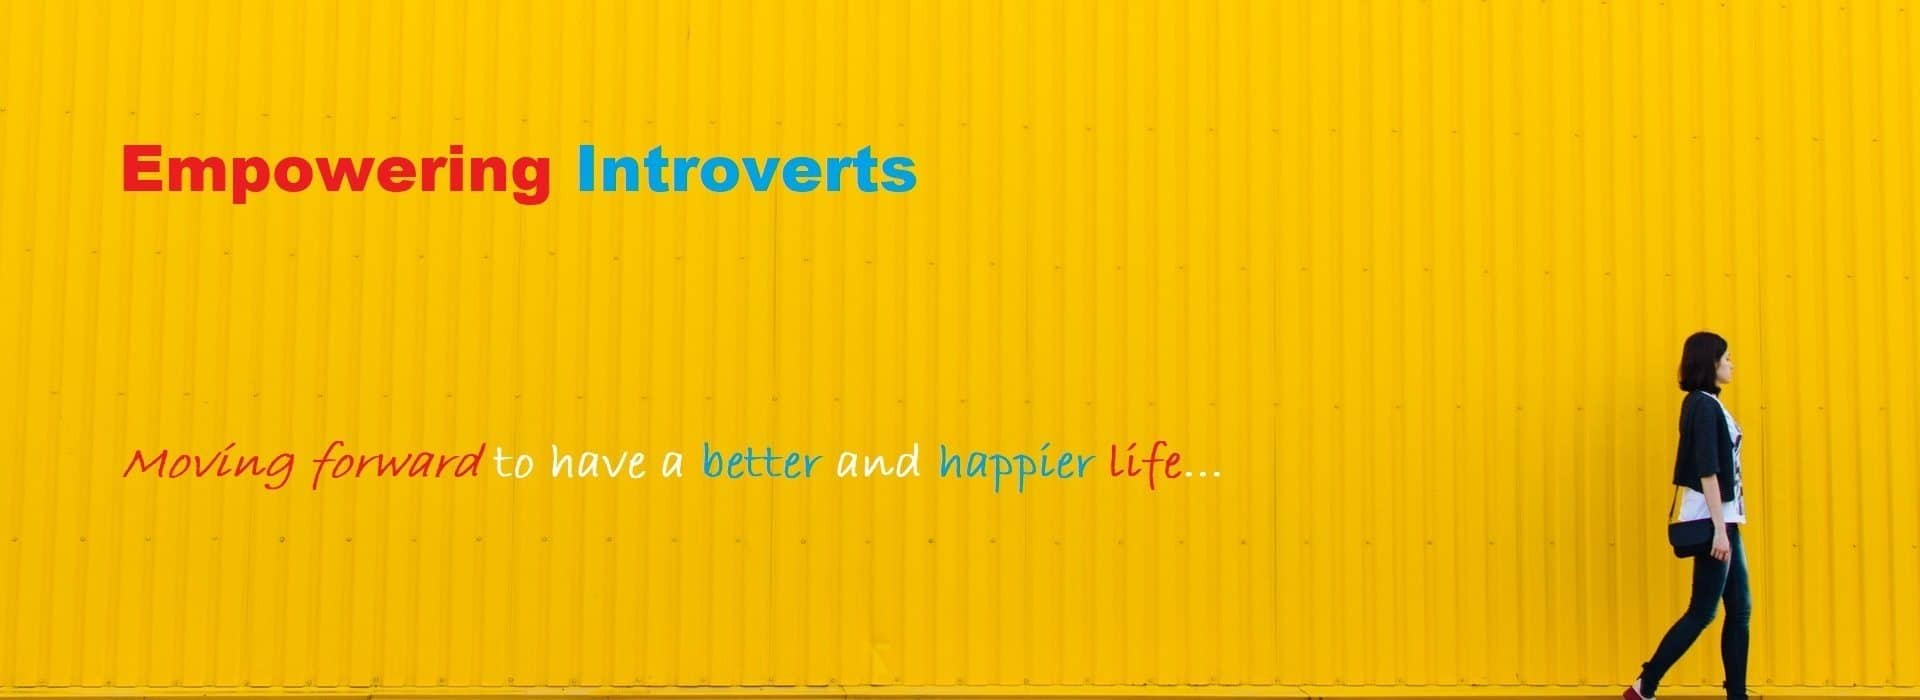 Empowering Introverts